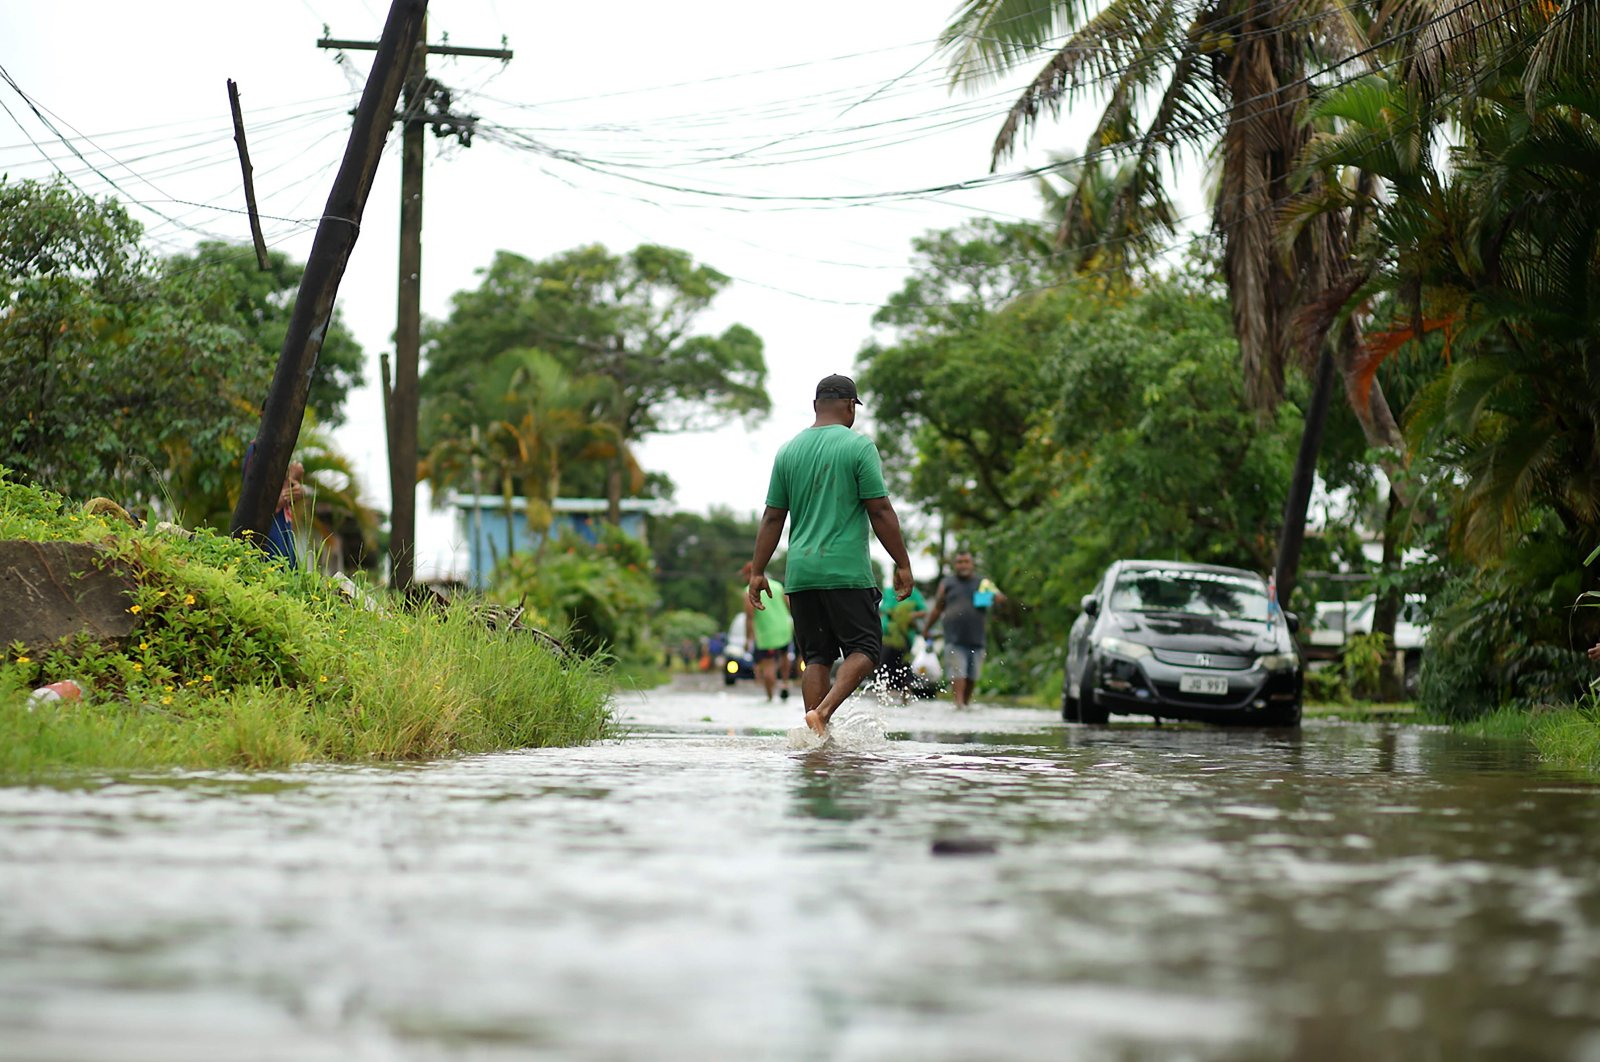 Residents wade through flooded streets in Suva, Fiji, Dec. 16, 2020, ahead of Cyclone Yasa. (AFP Photo)